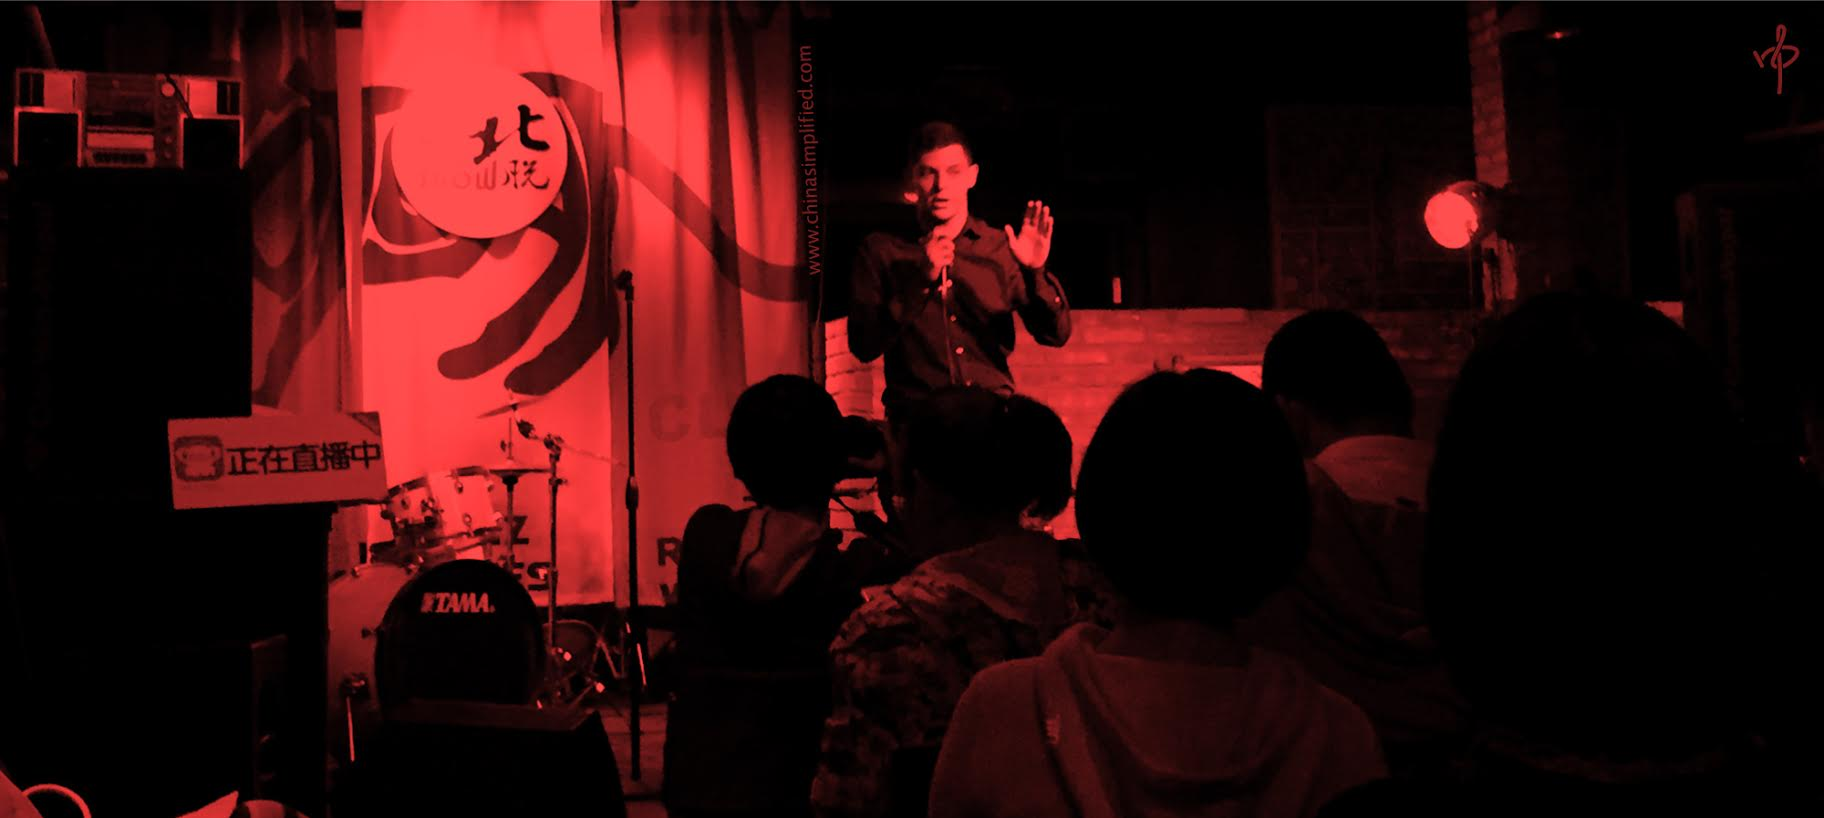 China Insiders: Jesse Appell on Cracking the Chinese Stand-Up Comedy Market